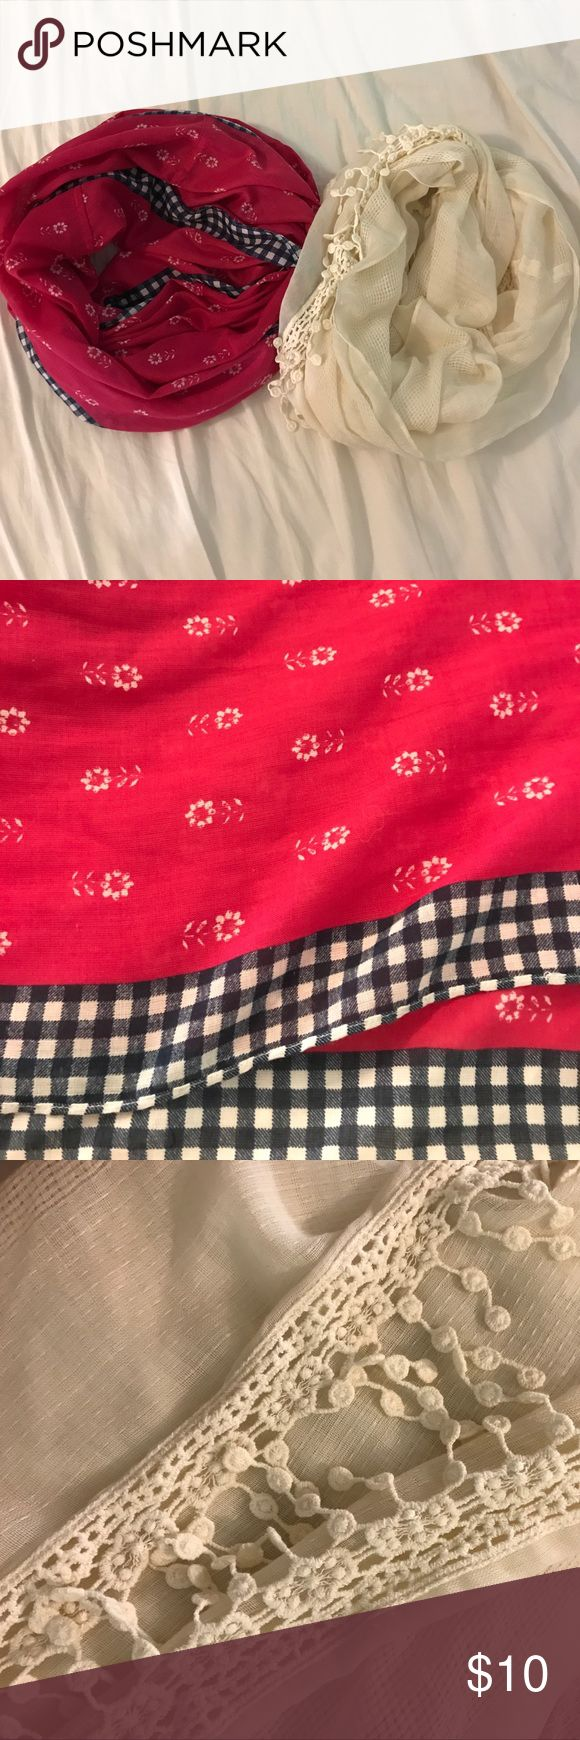 ABERCROMBIE&FITCH SCARVES The magenta/ pink scarves has white flower print with a blue checkered pattern on the edge. The cream one has white details that hang off at the edge. Abercrombie & Fitch Accessories Scarves & Wraps